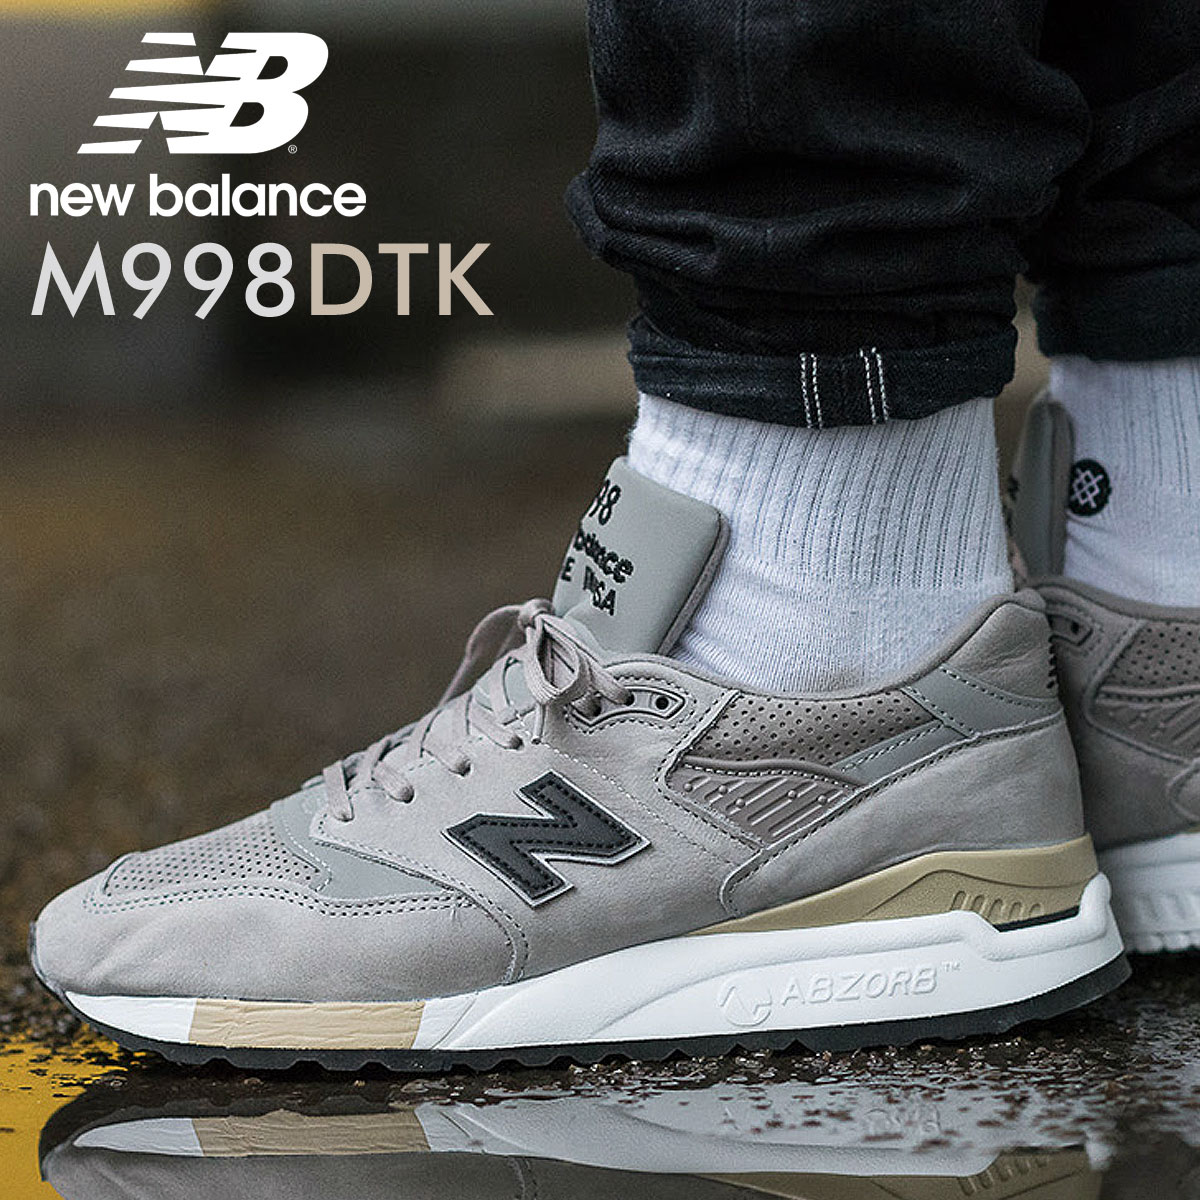 the latest 62adc c8acc New Balance 998 men's new balance sneakers M998DTK D Wise shoes gray